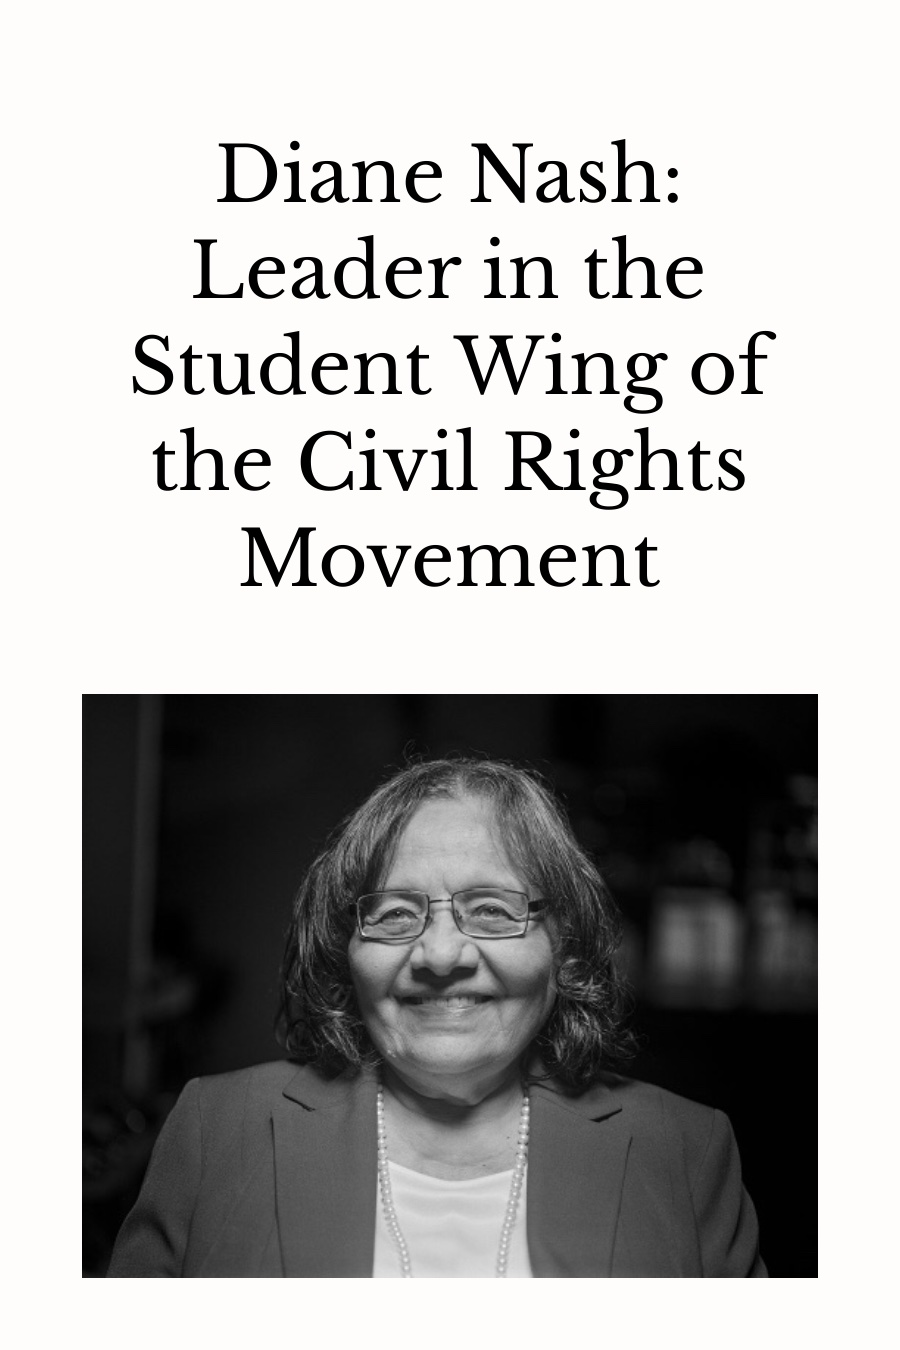 Diane Nash: Leader in the Student Wing of the Civil Rights Movement